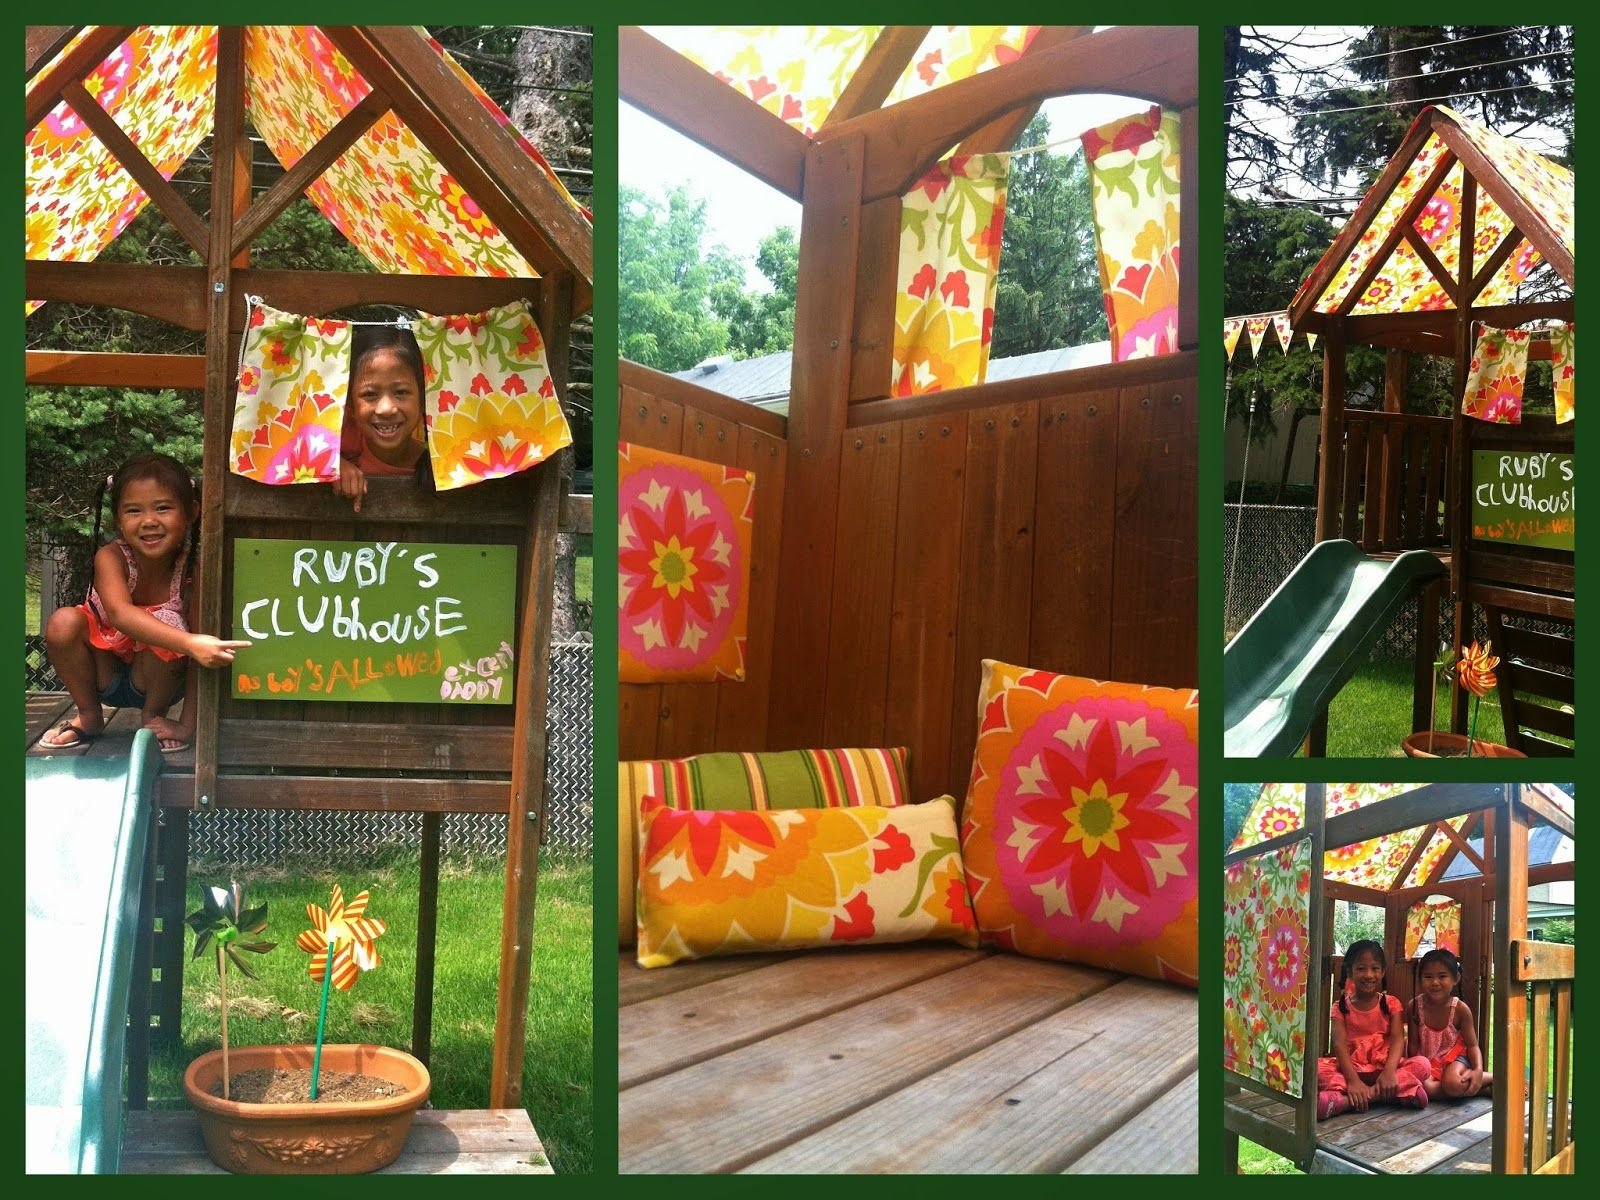 How to turn that old swing set into a pretty amazing space! Fun summer DIY or custom made tarps by Pretti Mini! www.etsy.com/shop/prettimini Wanna save 10% on all orders? It's easy! Subscribe to our VIP CLUB to get the coupon code! You'll be the first to know about our sales and promotions, AND get sneak peaks at all newest goods! Just cut and paste this into your browser to sign up:   http://eepurl.com/4KyWb